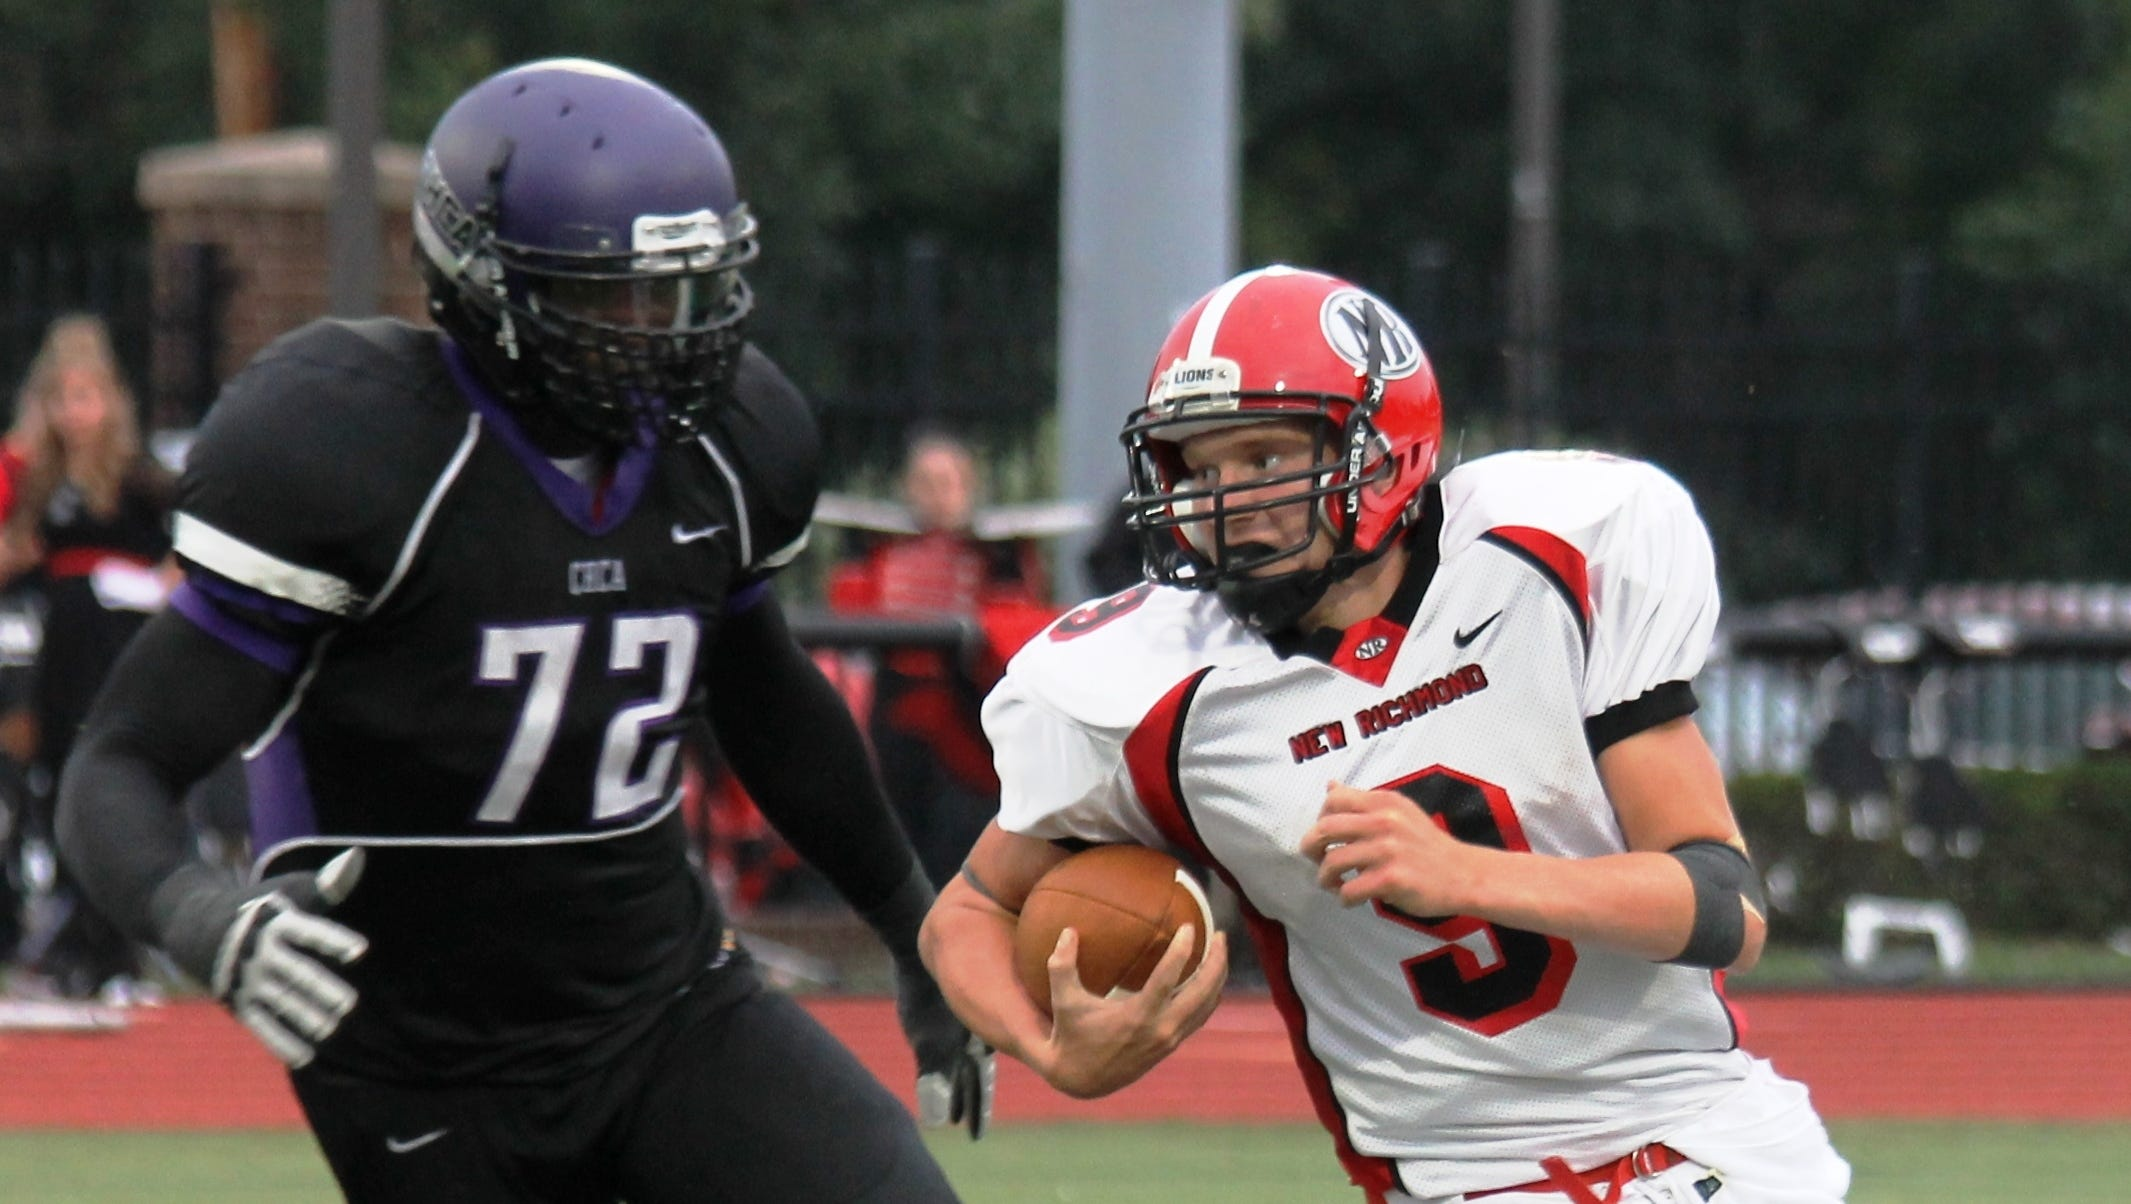 Chca S Sammons From Water Boy To Top Recruit